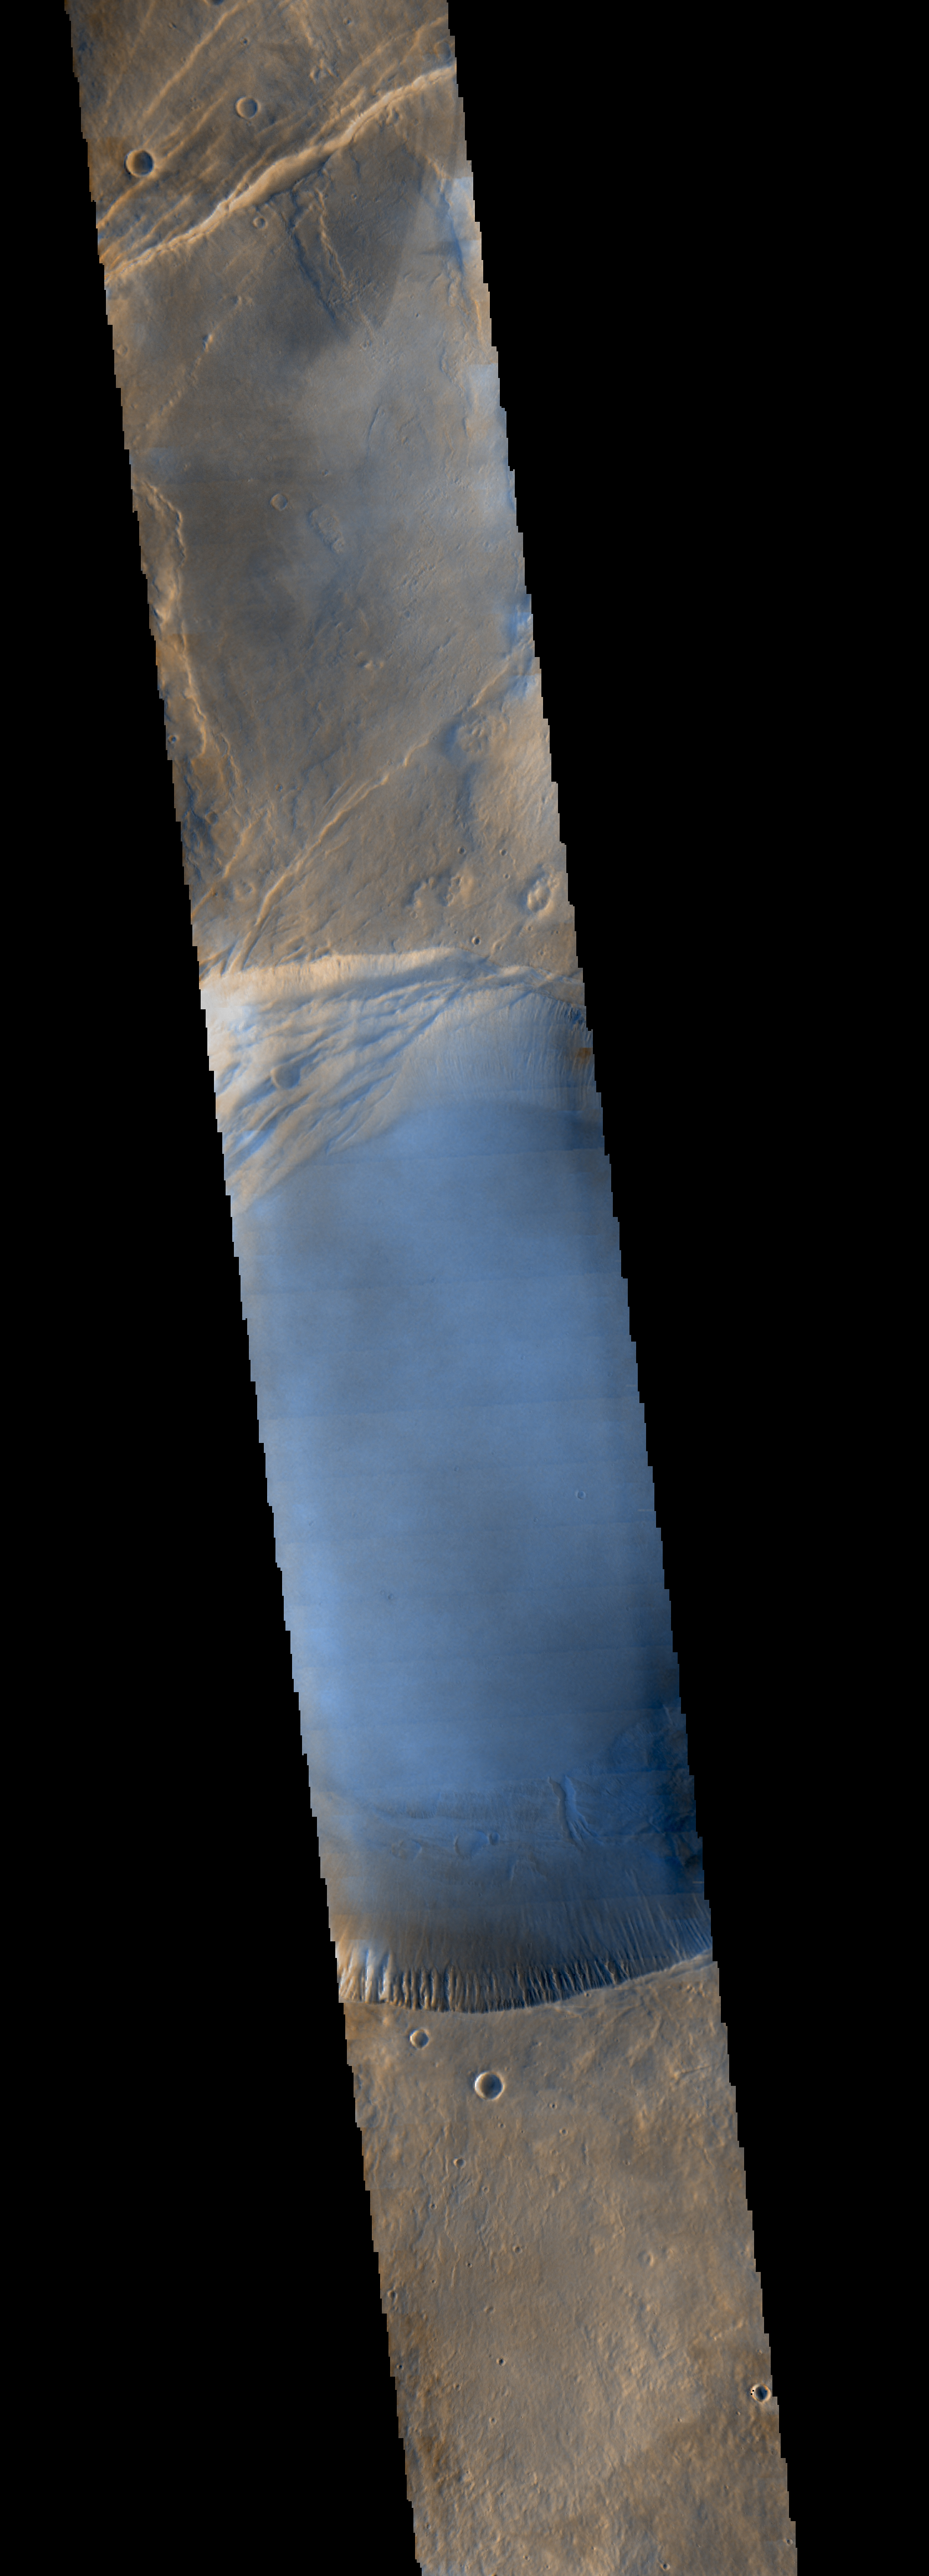 Mars-Odyssey-THEMIS-Pavonis-Mons-Volcano-Clouds-pia19675-full